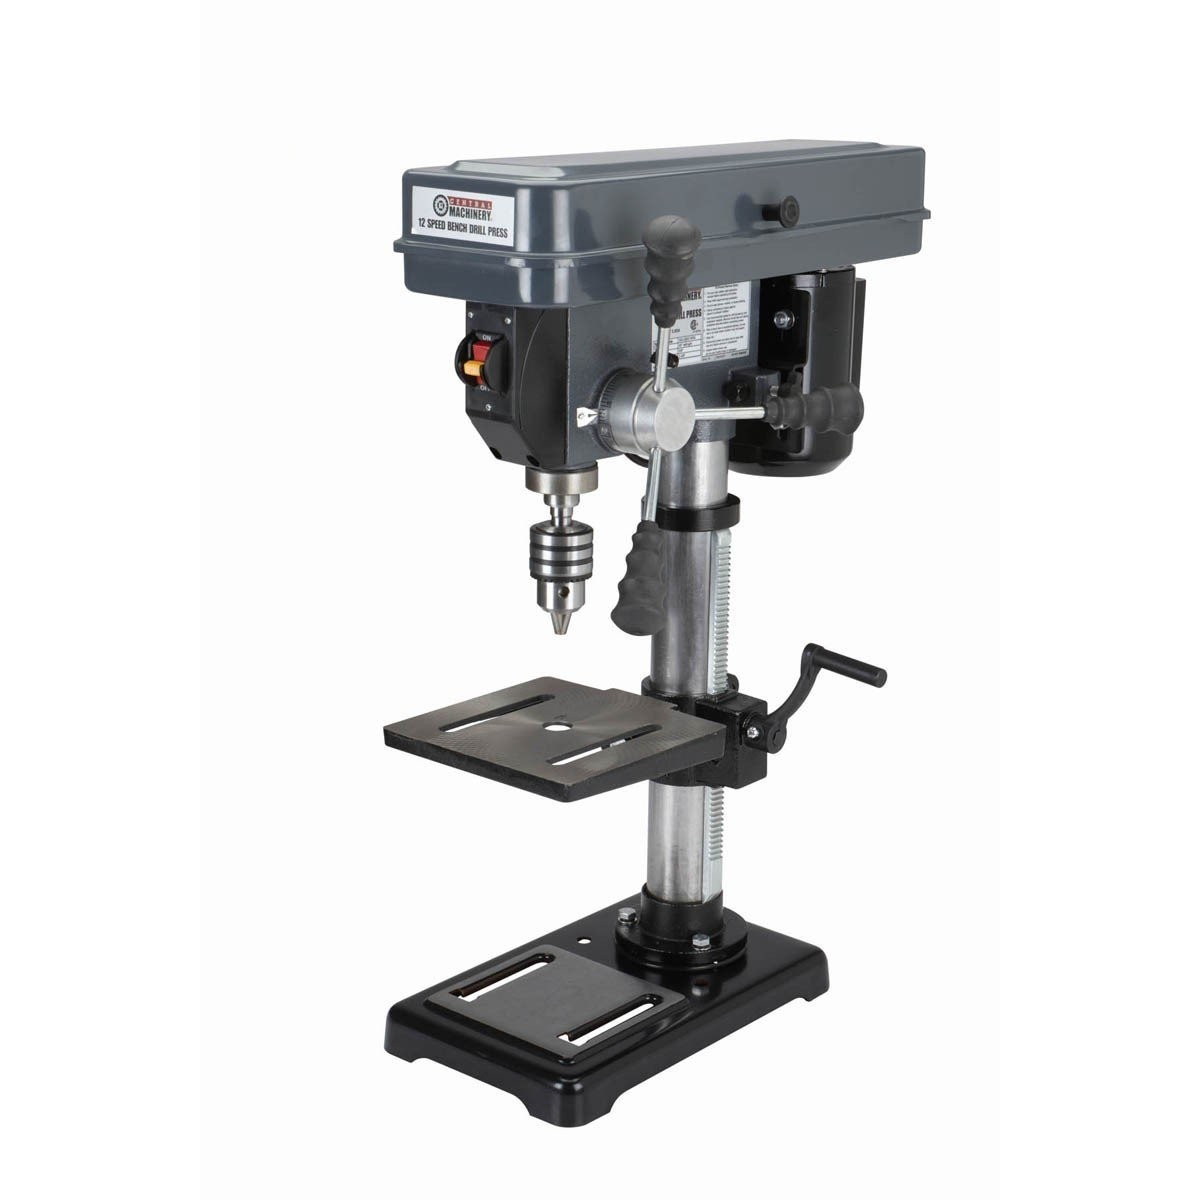 10 in. Bench Mount Drill Press, 12 Speed by Central Machinery